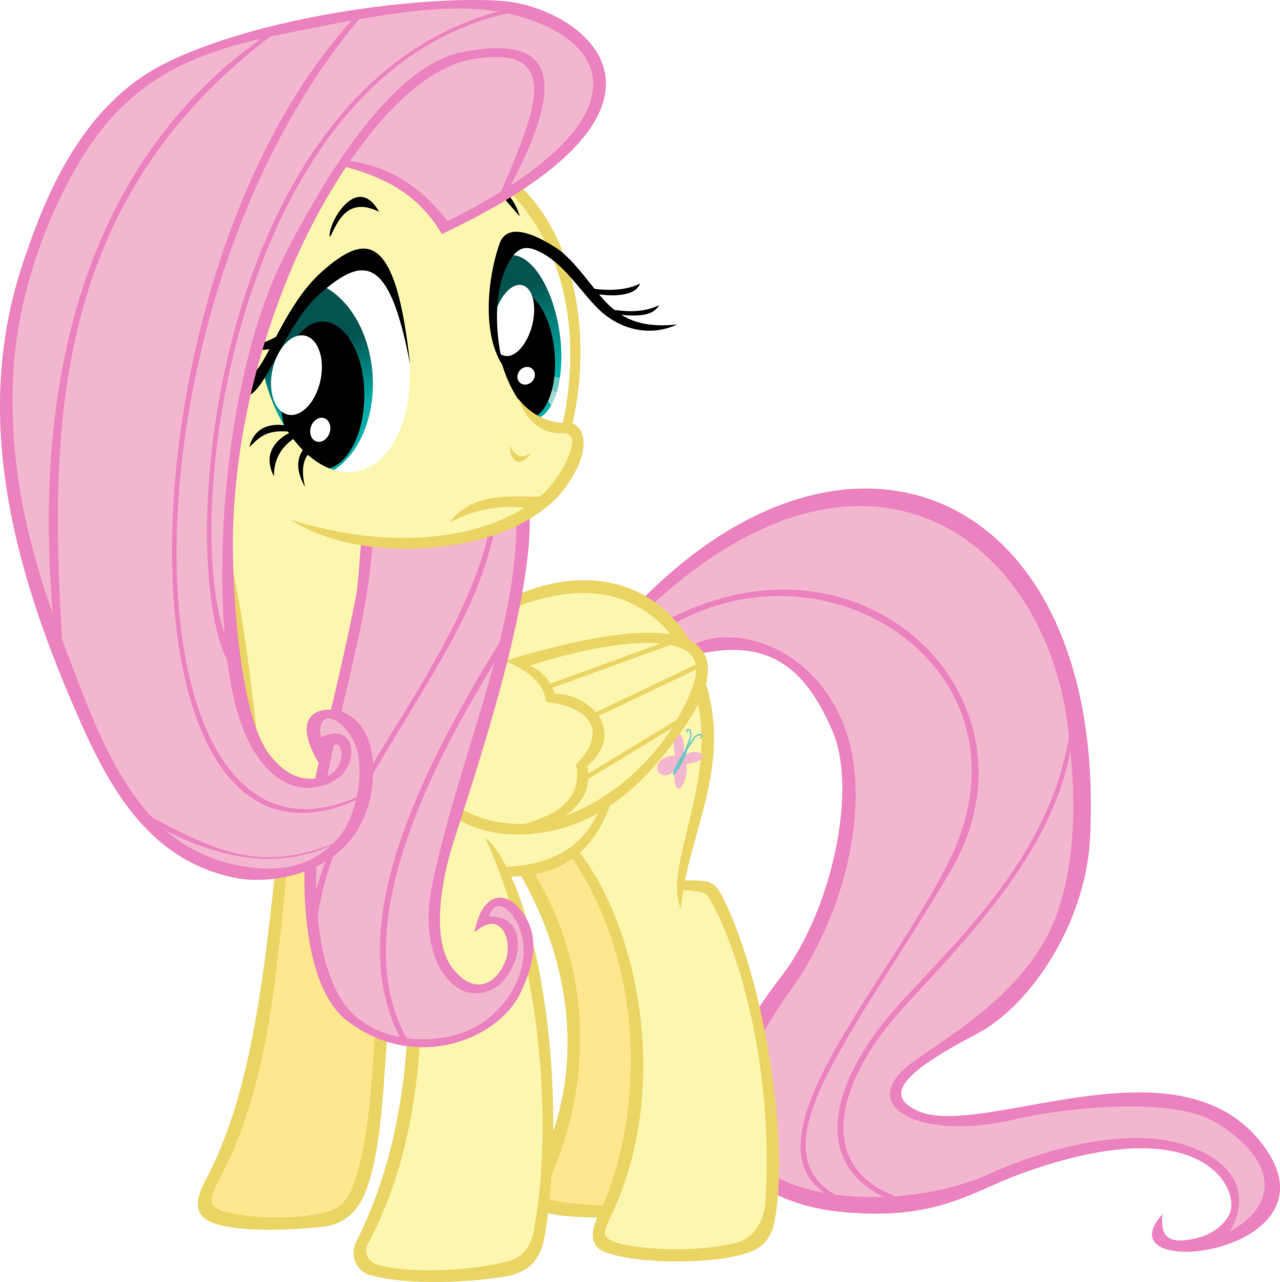 fluttershy_by_krazy3-d55hchs.png